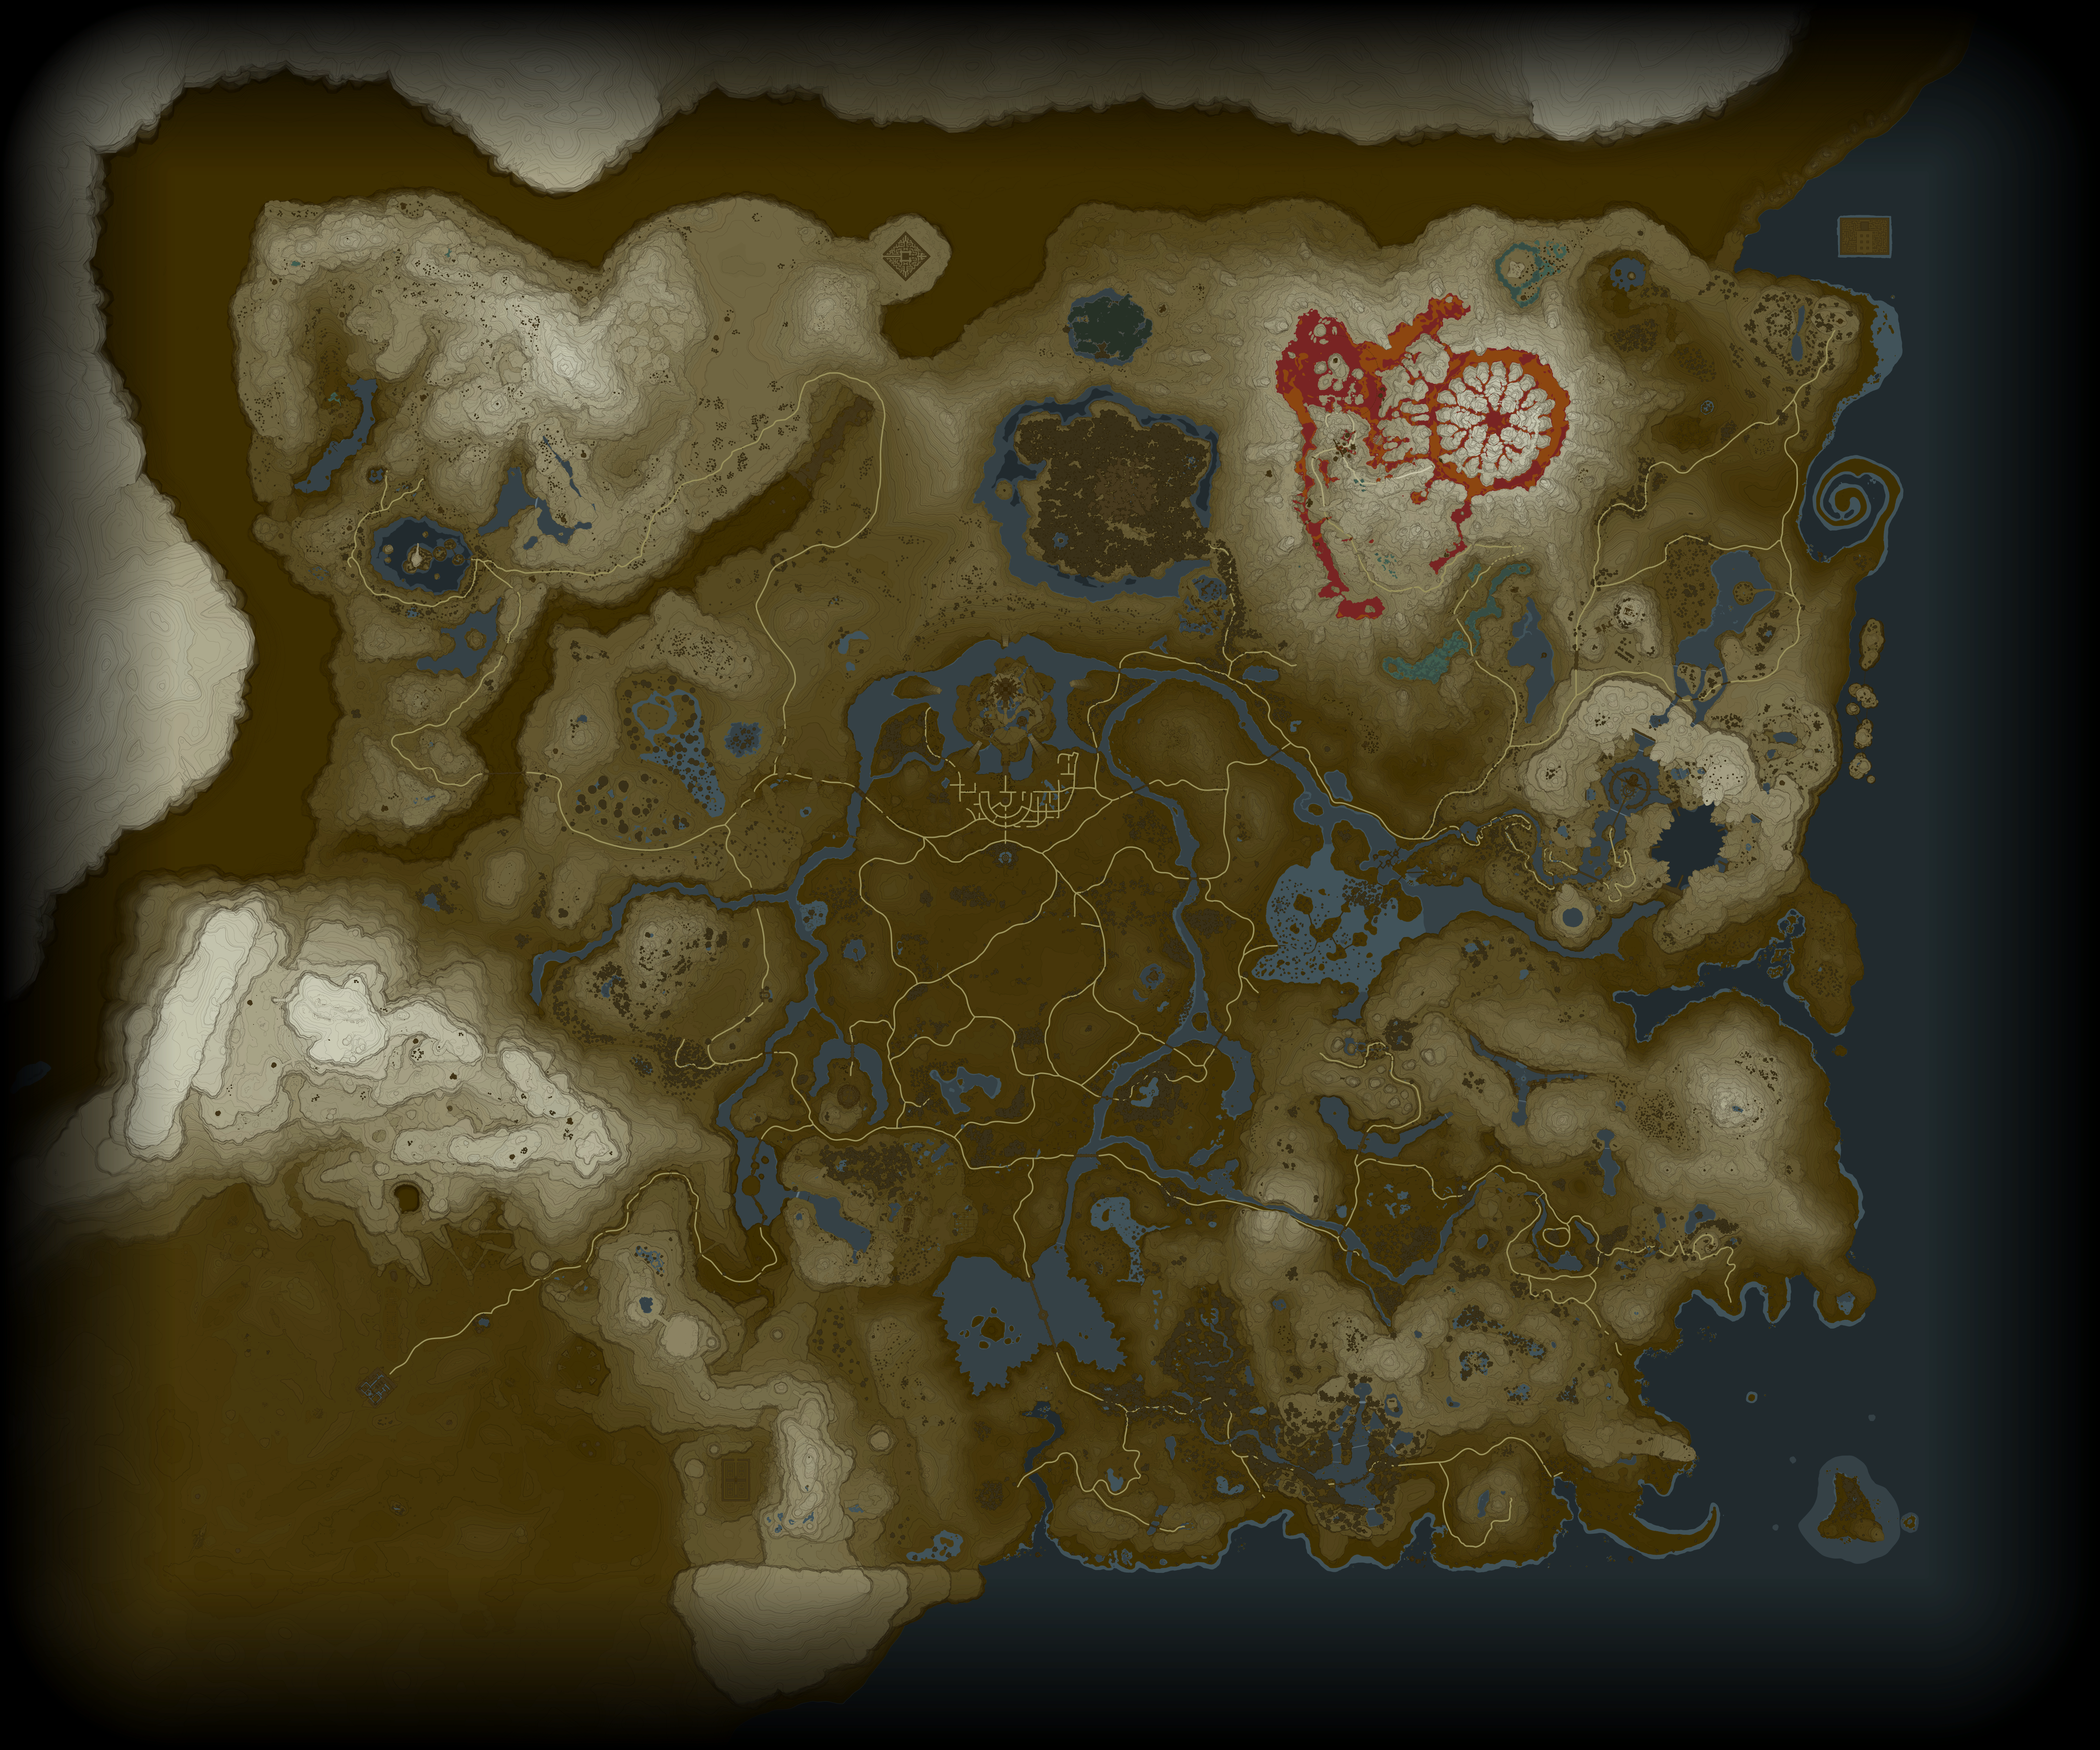 Zelda: Breath of the Wild Waypoint Map on skyward sword map, wind waker map, star wars map, smash brothers map, harvest moon map, kingdom hearts map, minecraft map, mario world map, hyrule map, super mario map, zilla map, castlevania 3 map, gta map, castlevania 2 map, pokemon map, metroid map, oracle of ages map, ocarina of time map, mario kart map, ikana map,